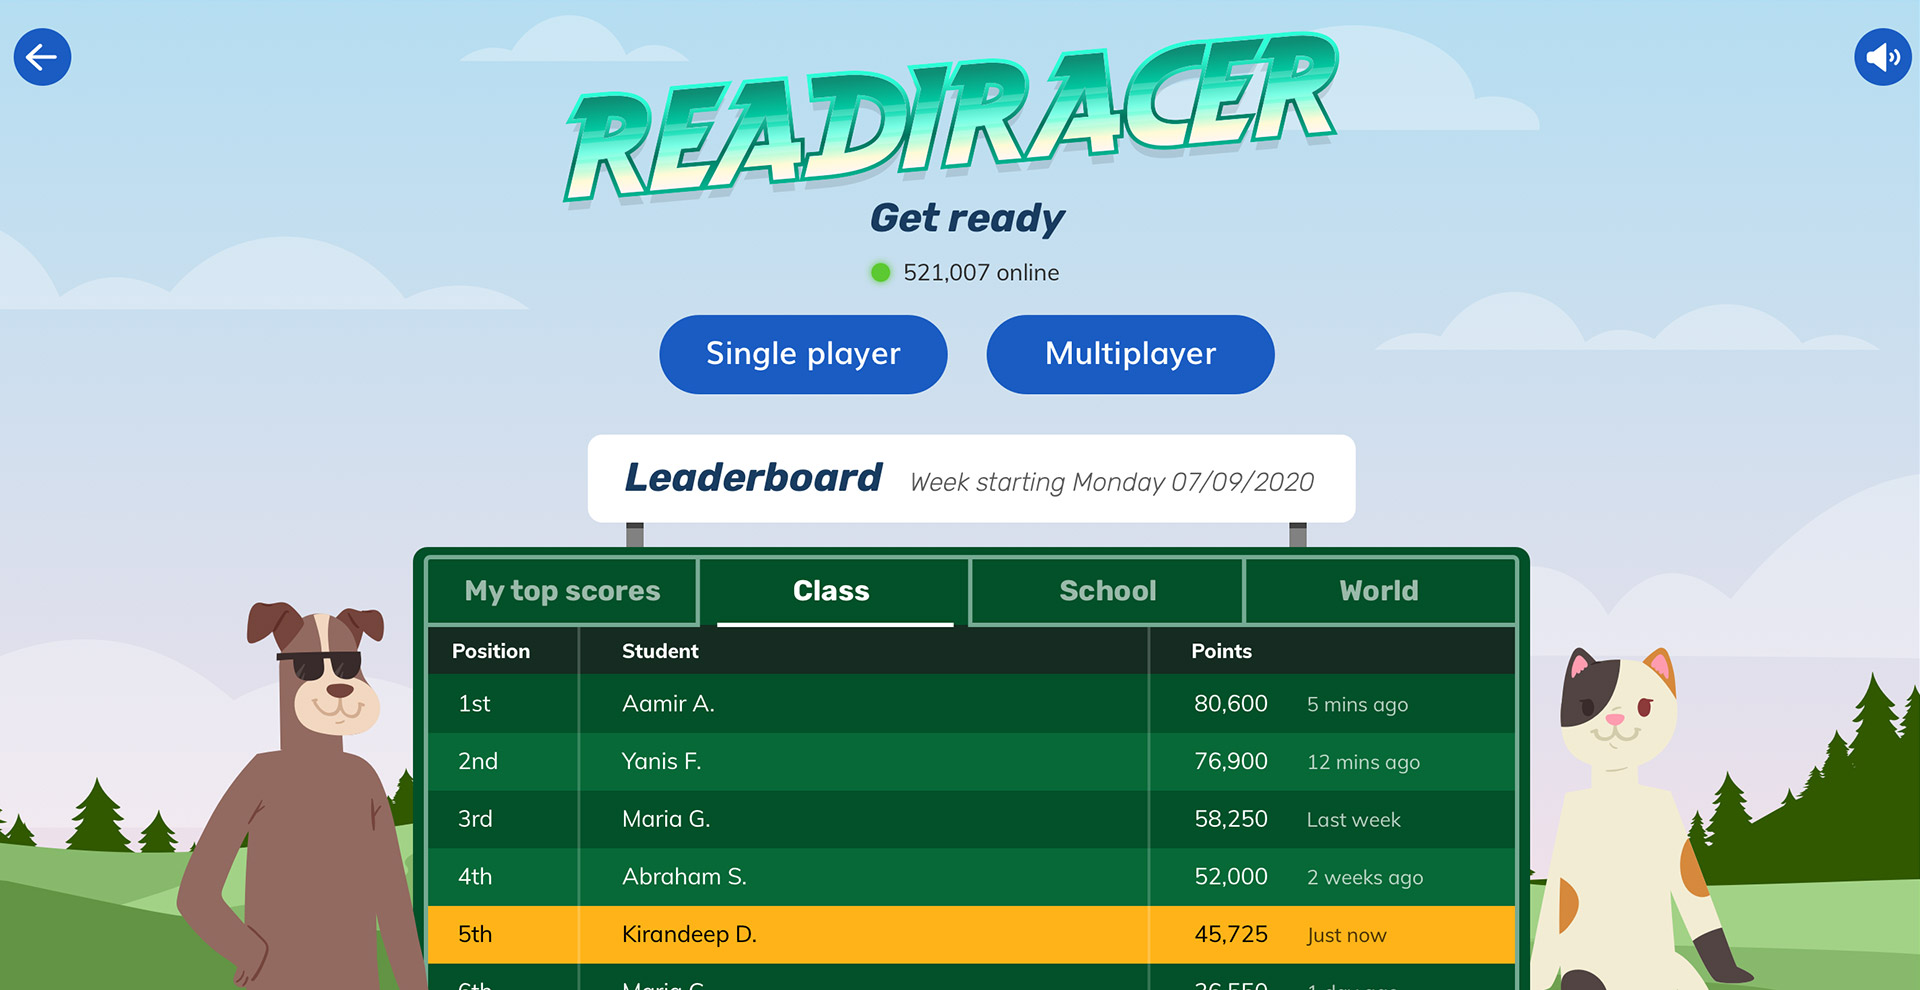 Video game leaderboard in spelling EdTech game